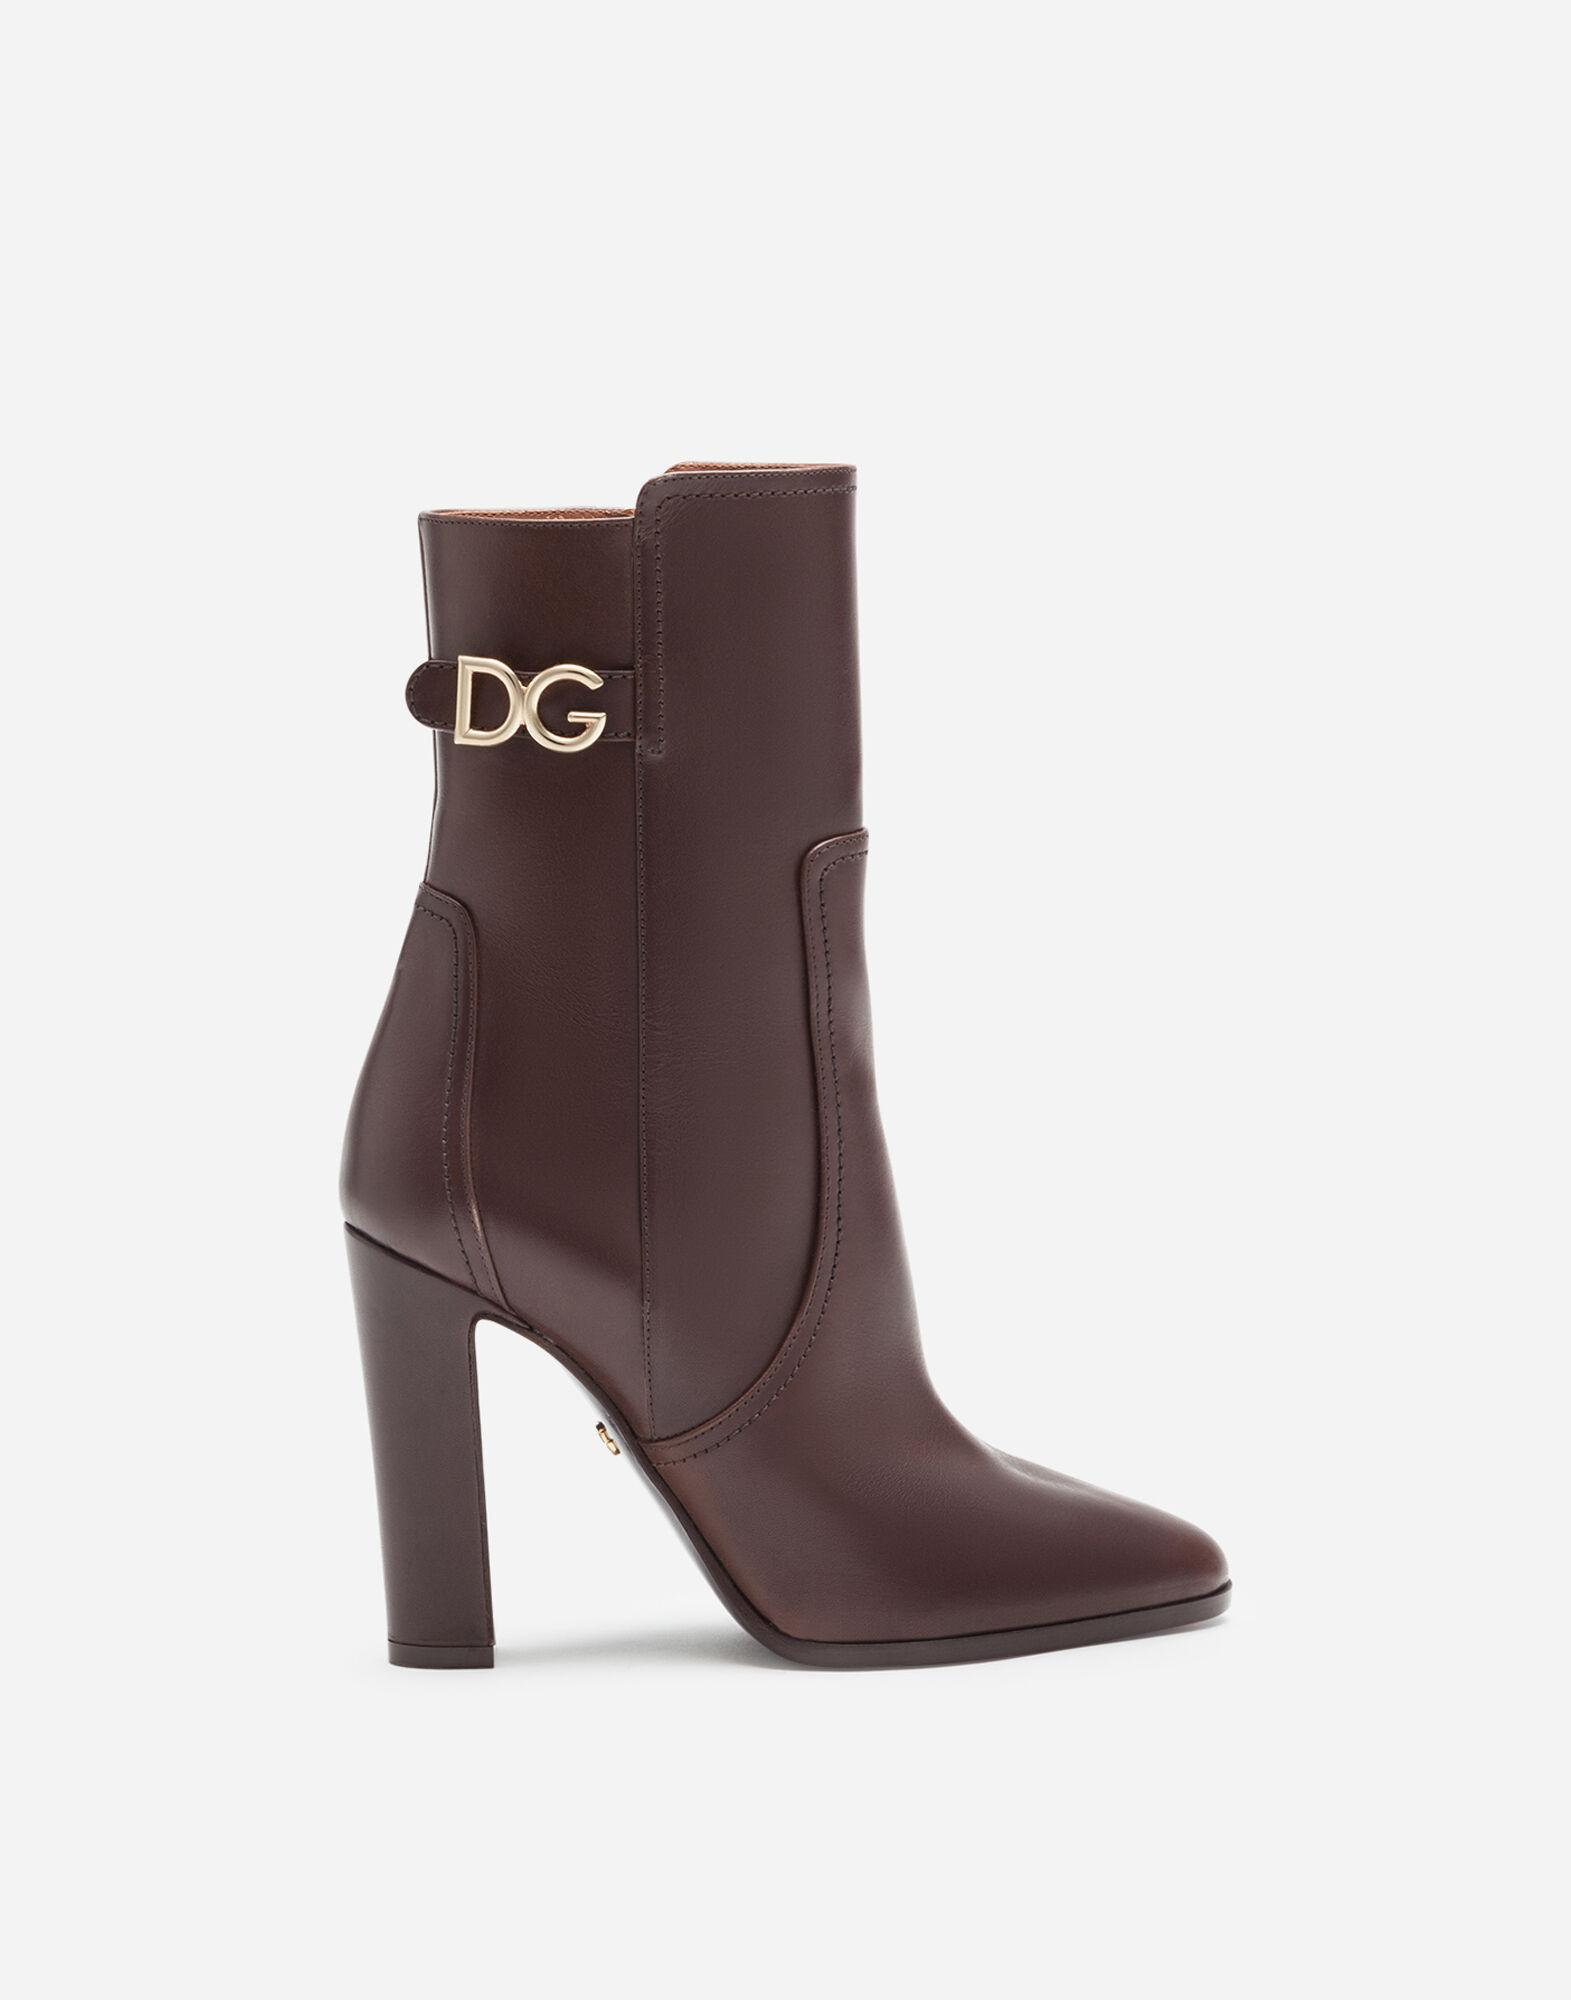 Ankle boots in cowhide with DG logo